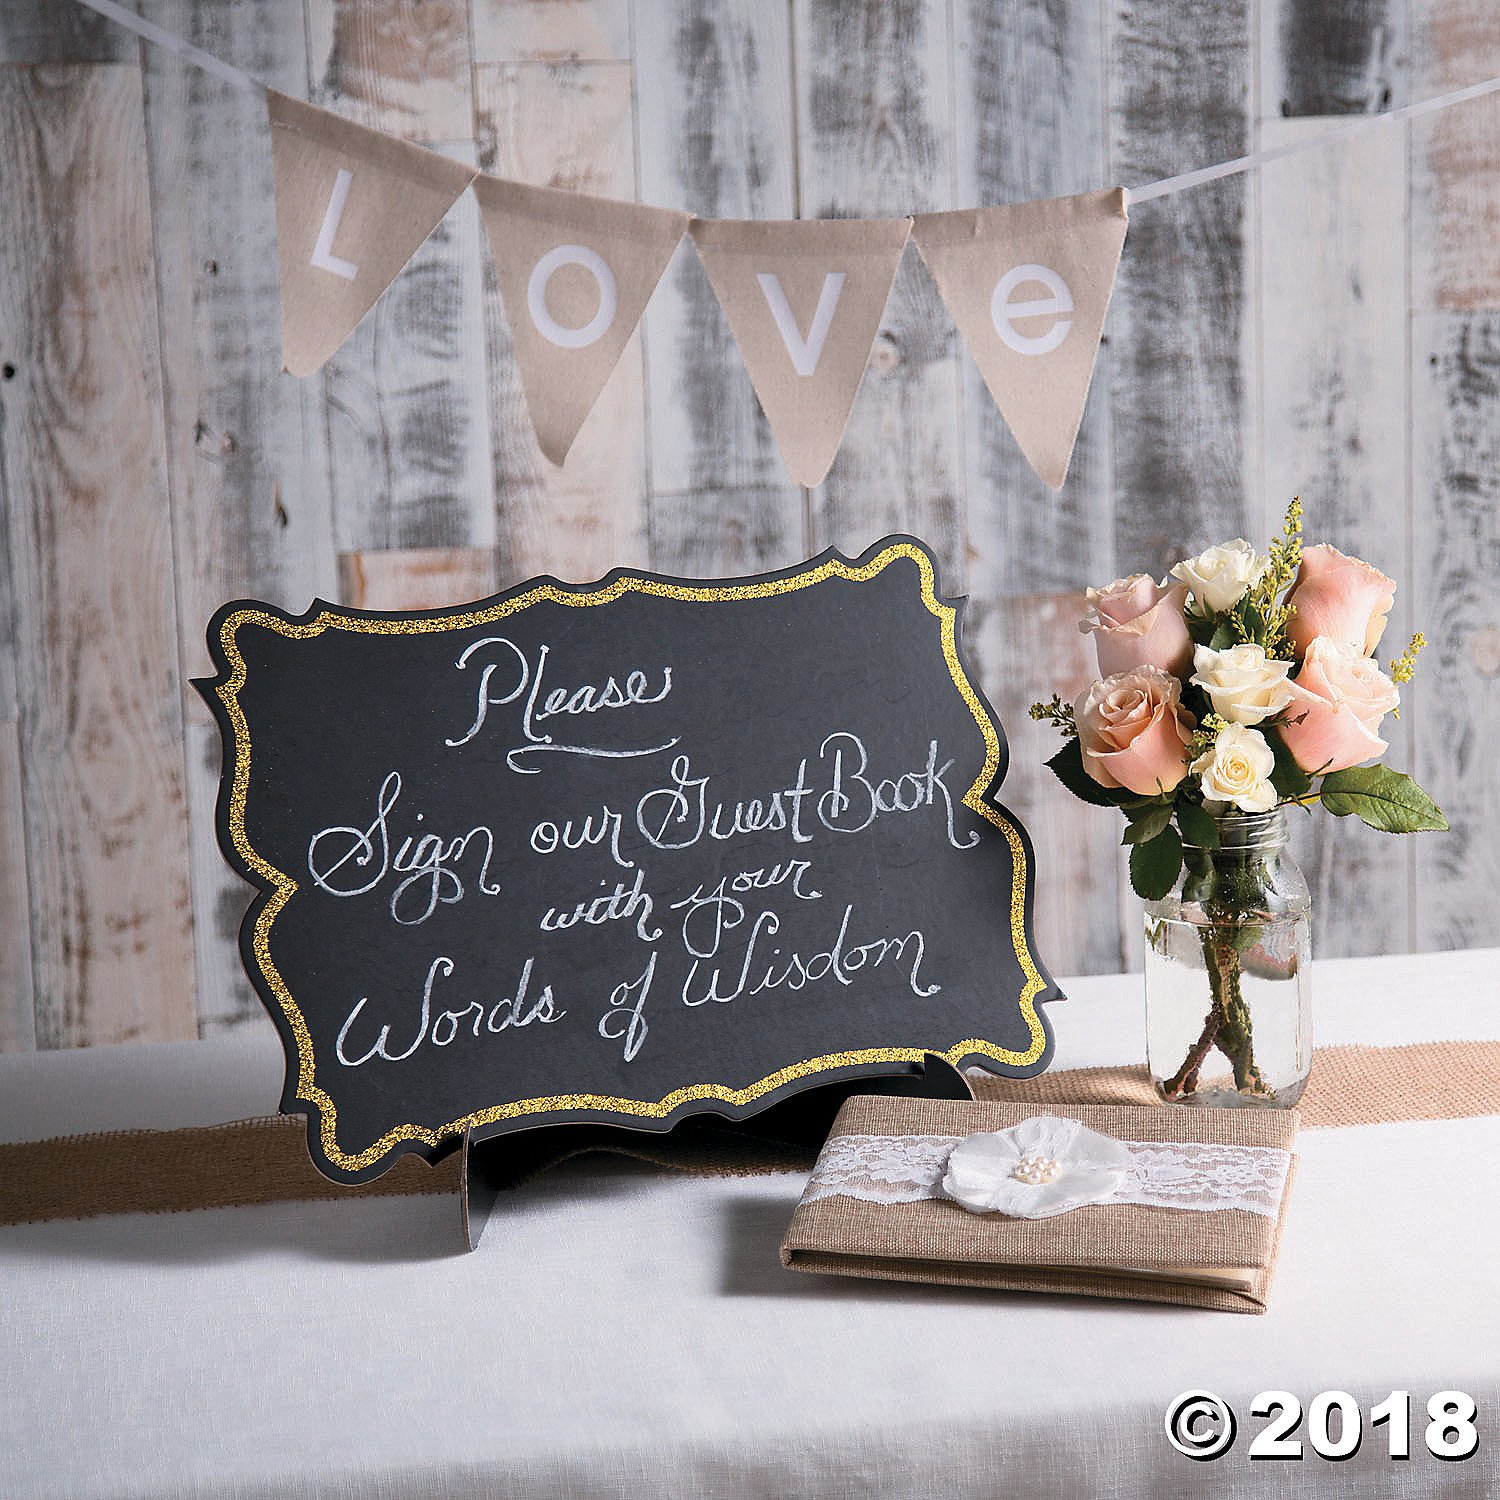 Large Tabletop Cardboard Chalkboard - Cute Write on Decorative Chalkboard with Stand for Restaurants, Kitchen Decor, Holiday Signs